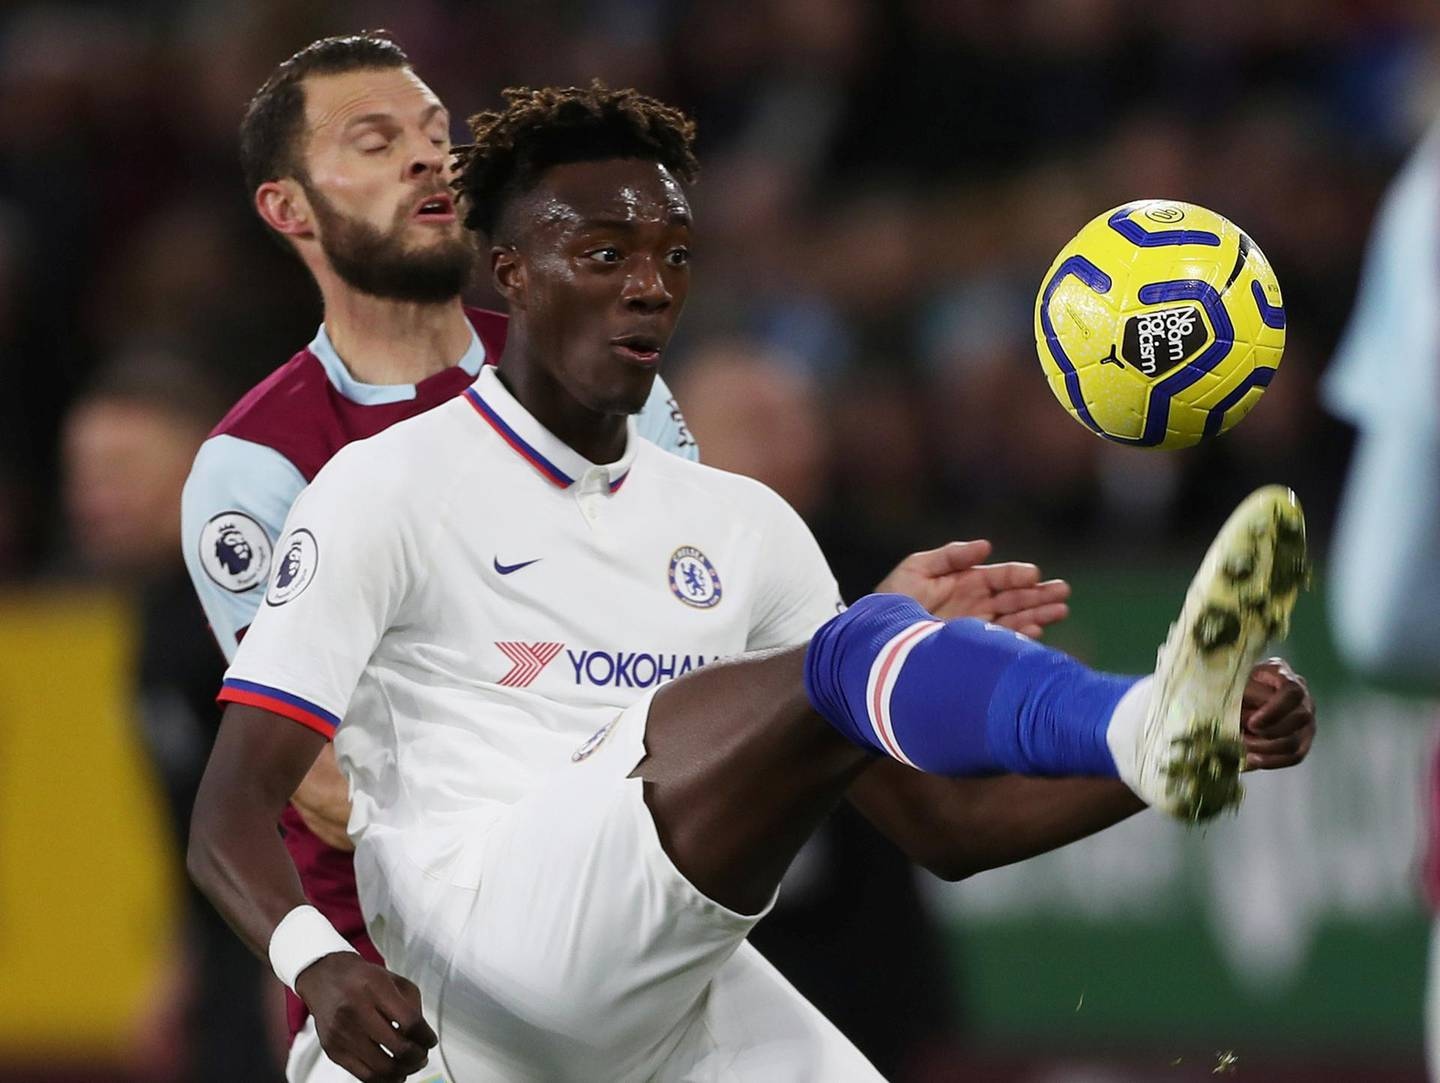 """Soccer Football - Premier League - Burnley v Chelsea - Turf Moor, Burnley, Britain - October 26, 2019  Chelsea's Tammy Abraham in action with Burnley's Erik Pieters   Action Images via Reuters/Lee Smith  EDITORIAL USE ONLY. No use with unauthorized audio, video, data, fixture lists, club/league logos or """"live"""" services. Online in-match use limited to 75 images, no video emulation. No use in betting, games or single club/league/player publications.  Please contact your account representative for further details."""